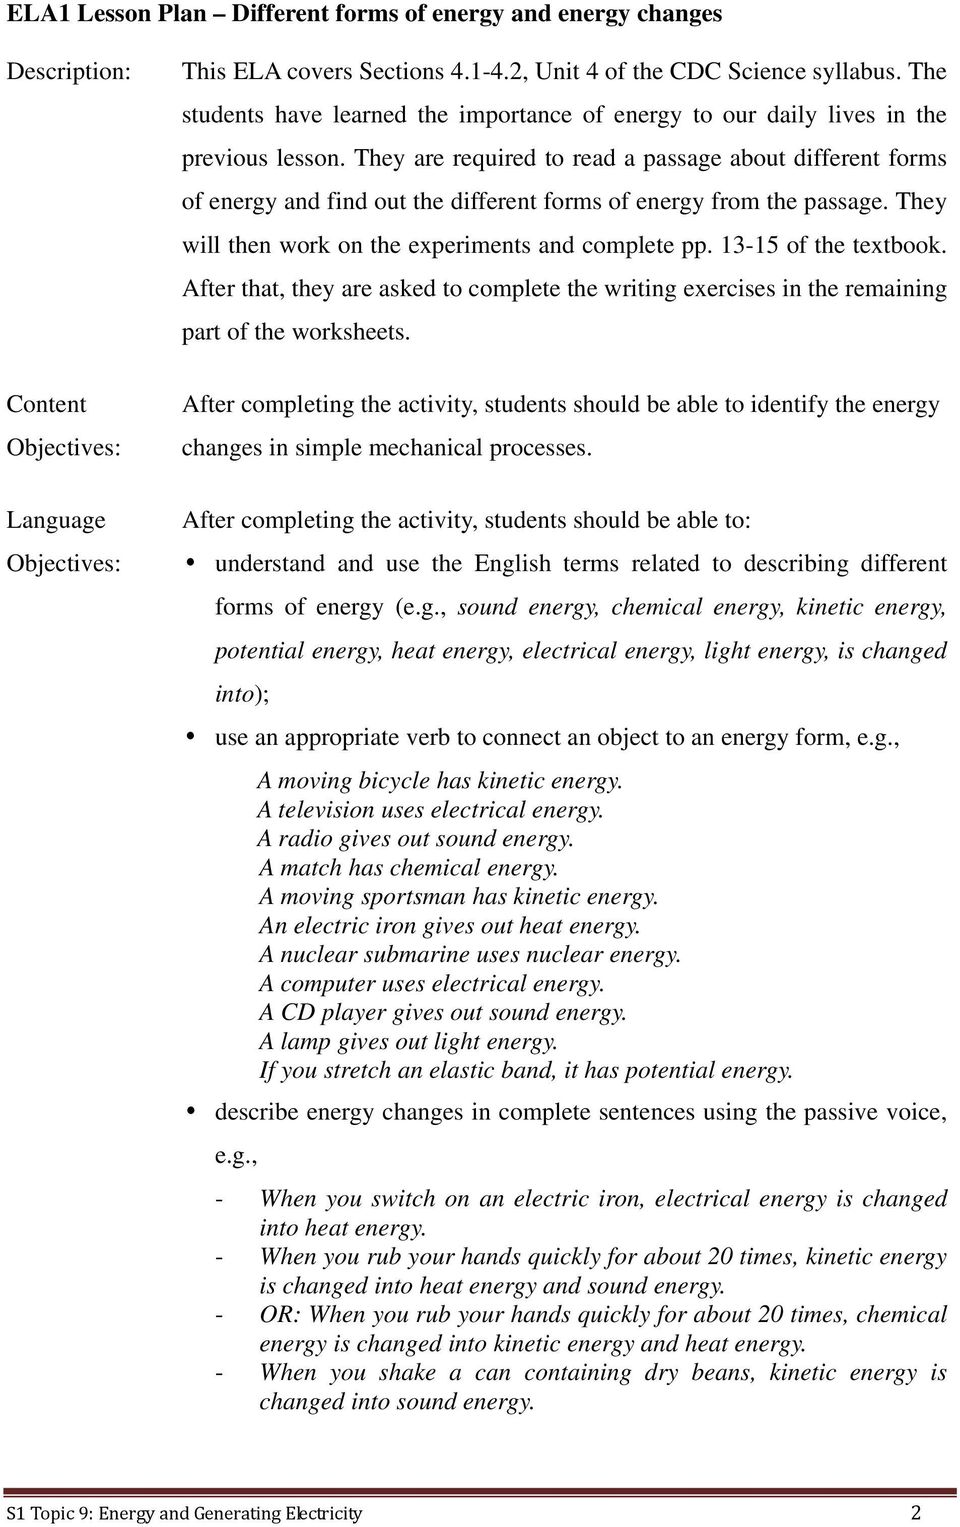 S1 Topic 9 Energy And Generating Electricity Level Kinetics Wiring Diagram They Are Required To Read A Passage About Different Forms Of Find Out The